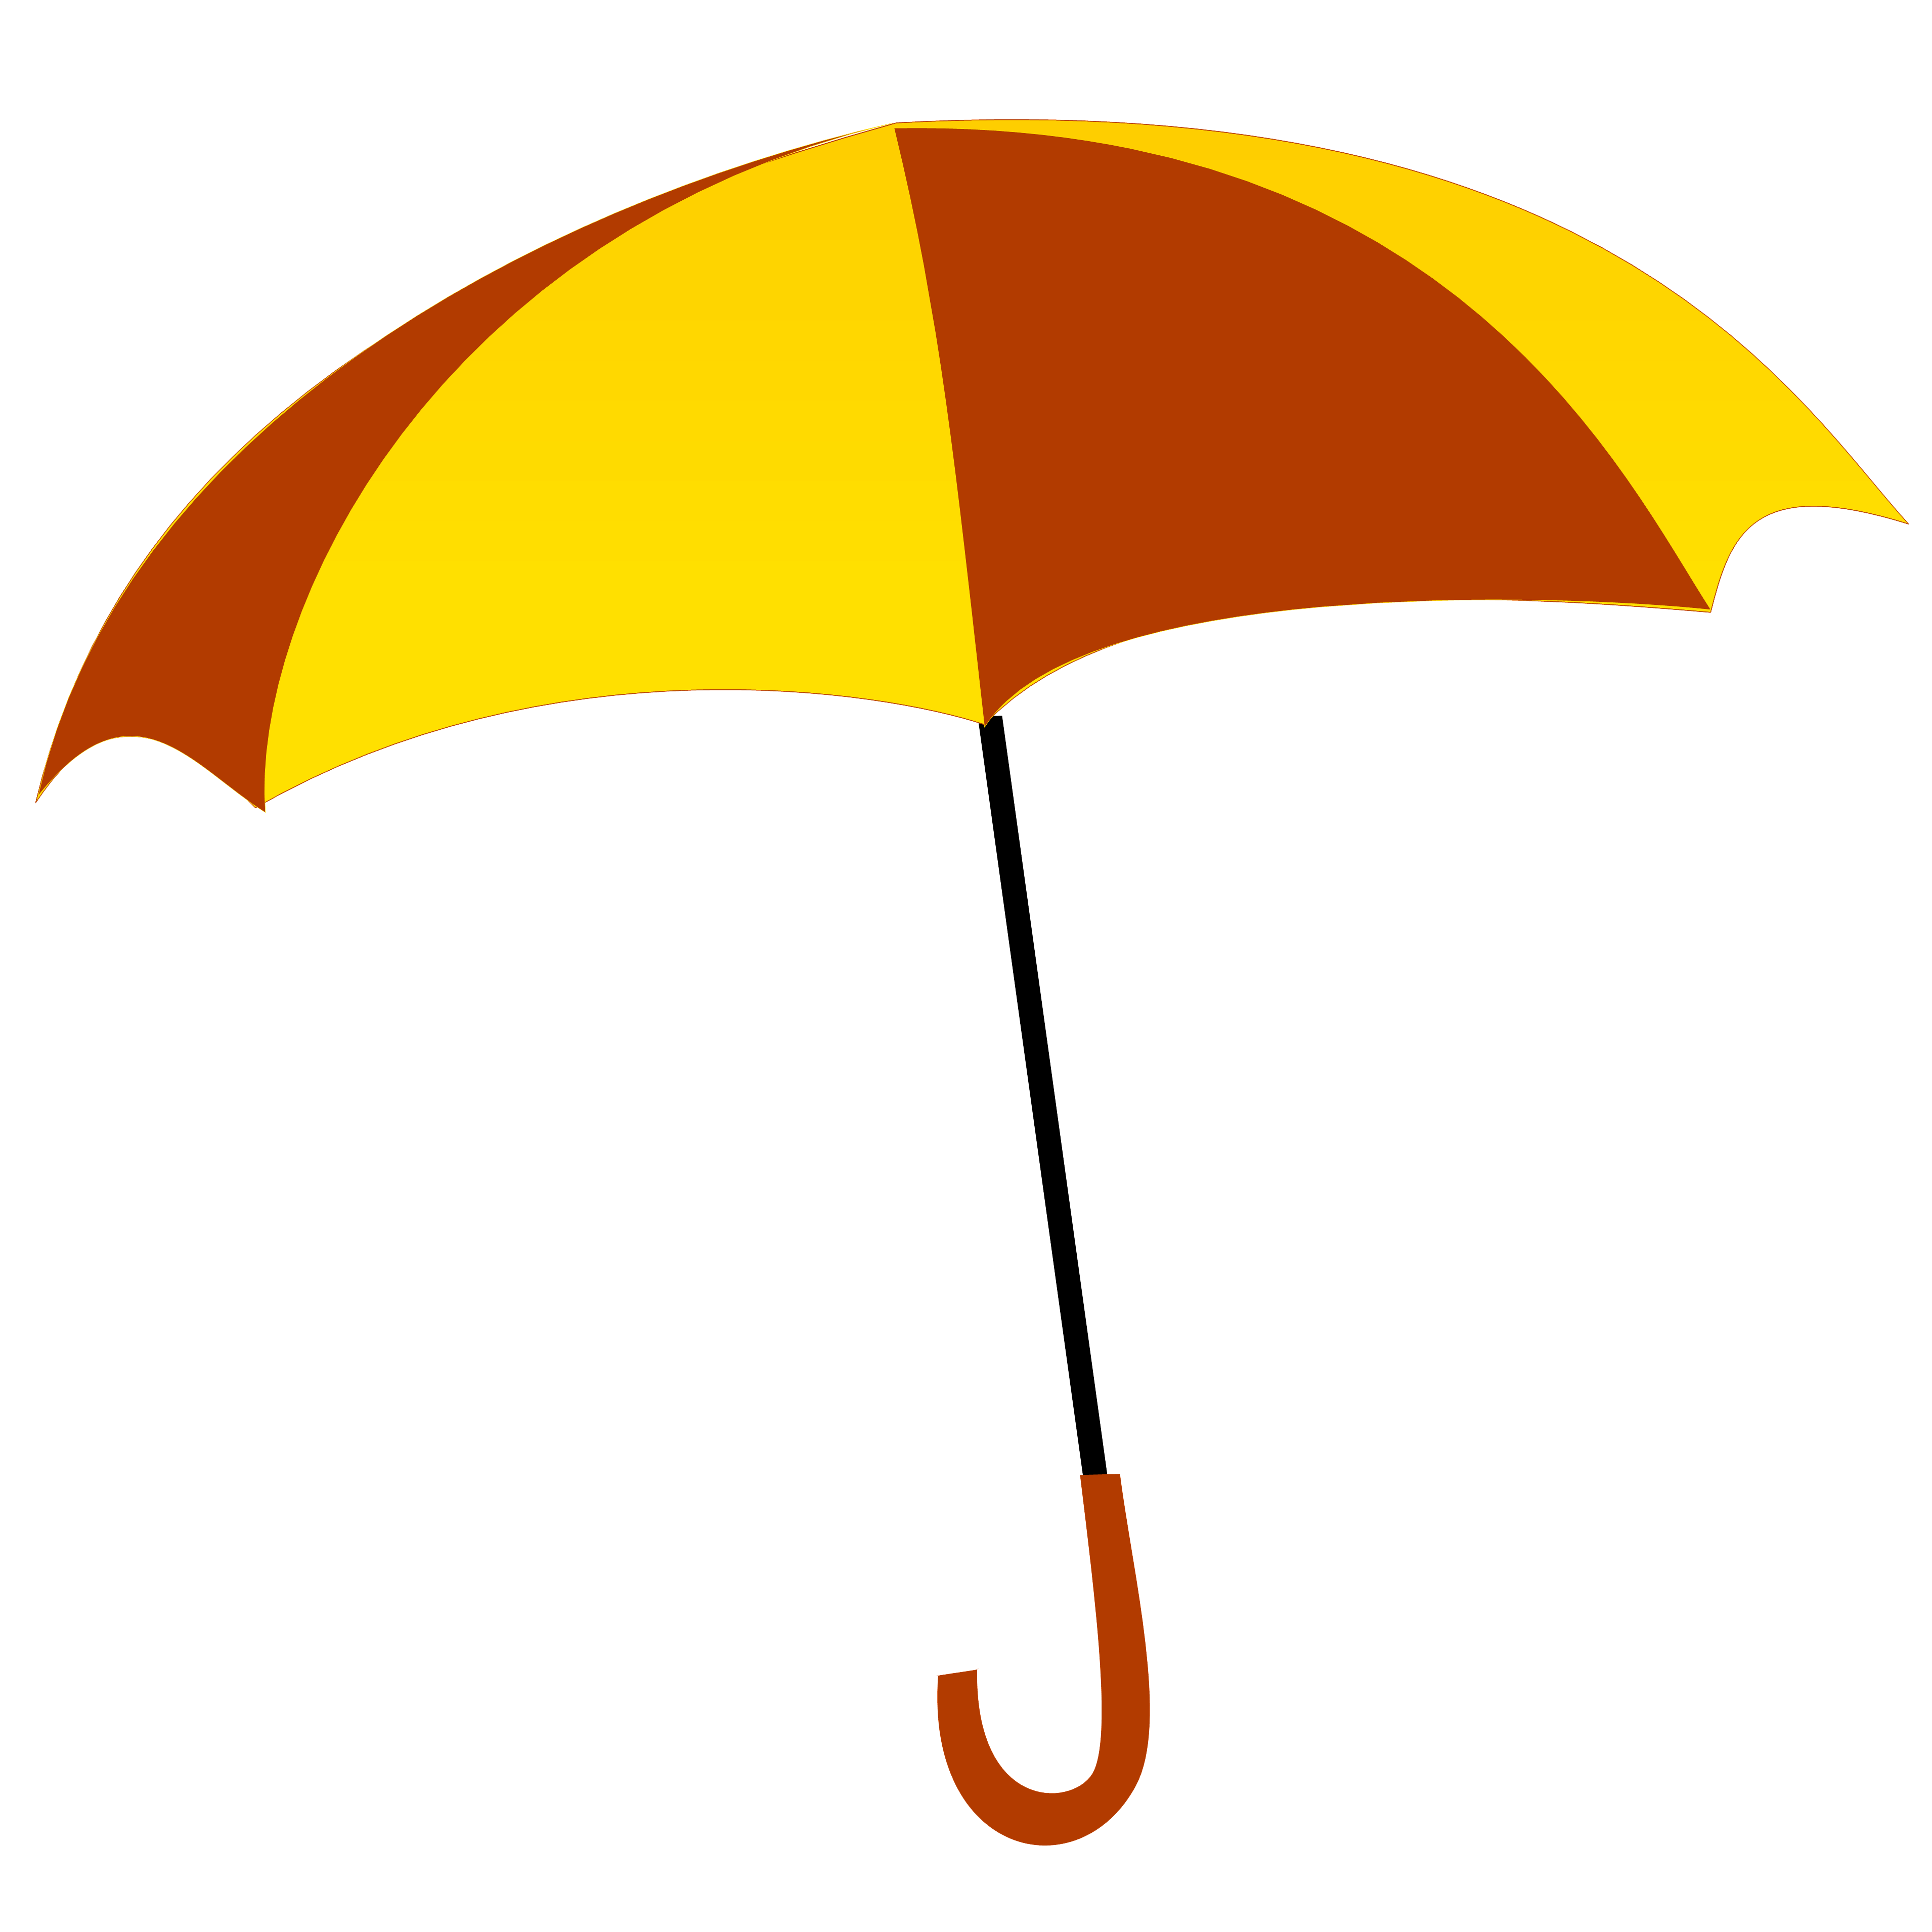 Umbrella PNG-PlusPNG.com-3820 - Umbrella PNG